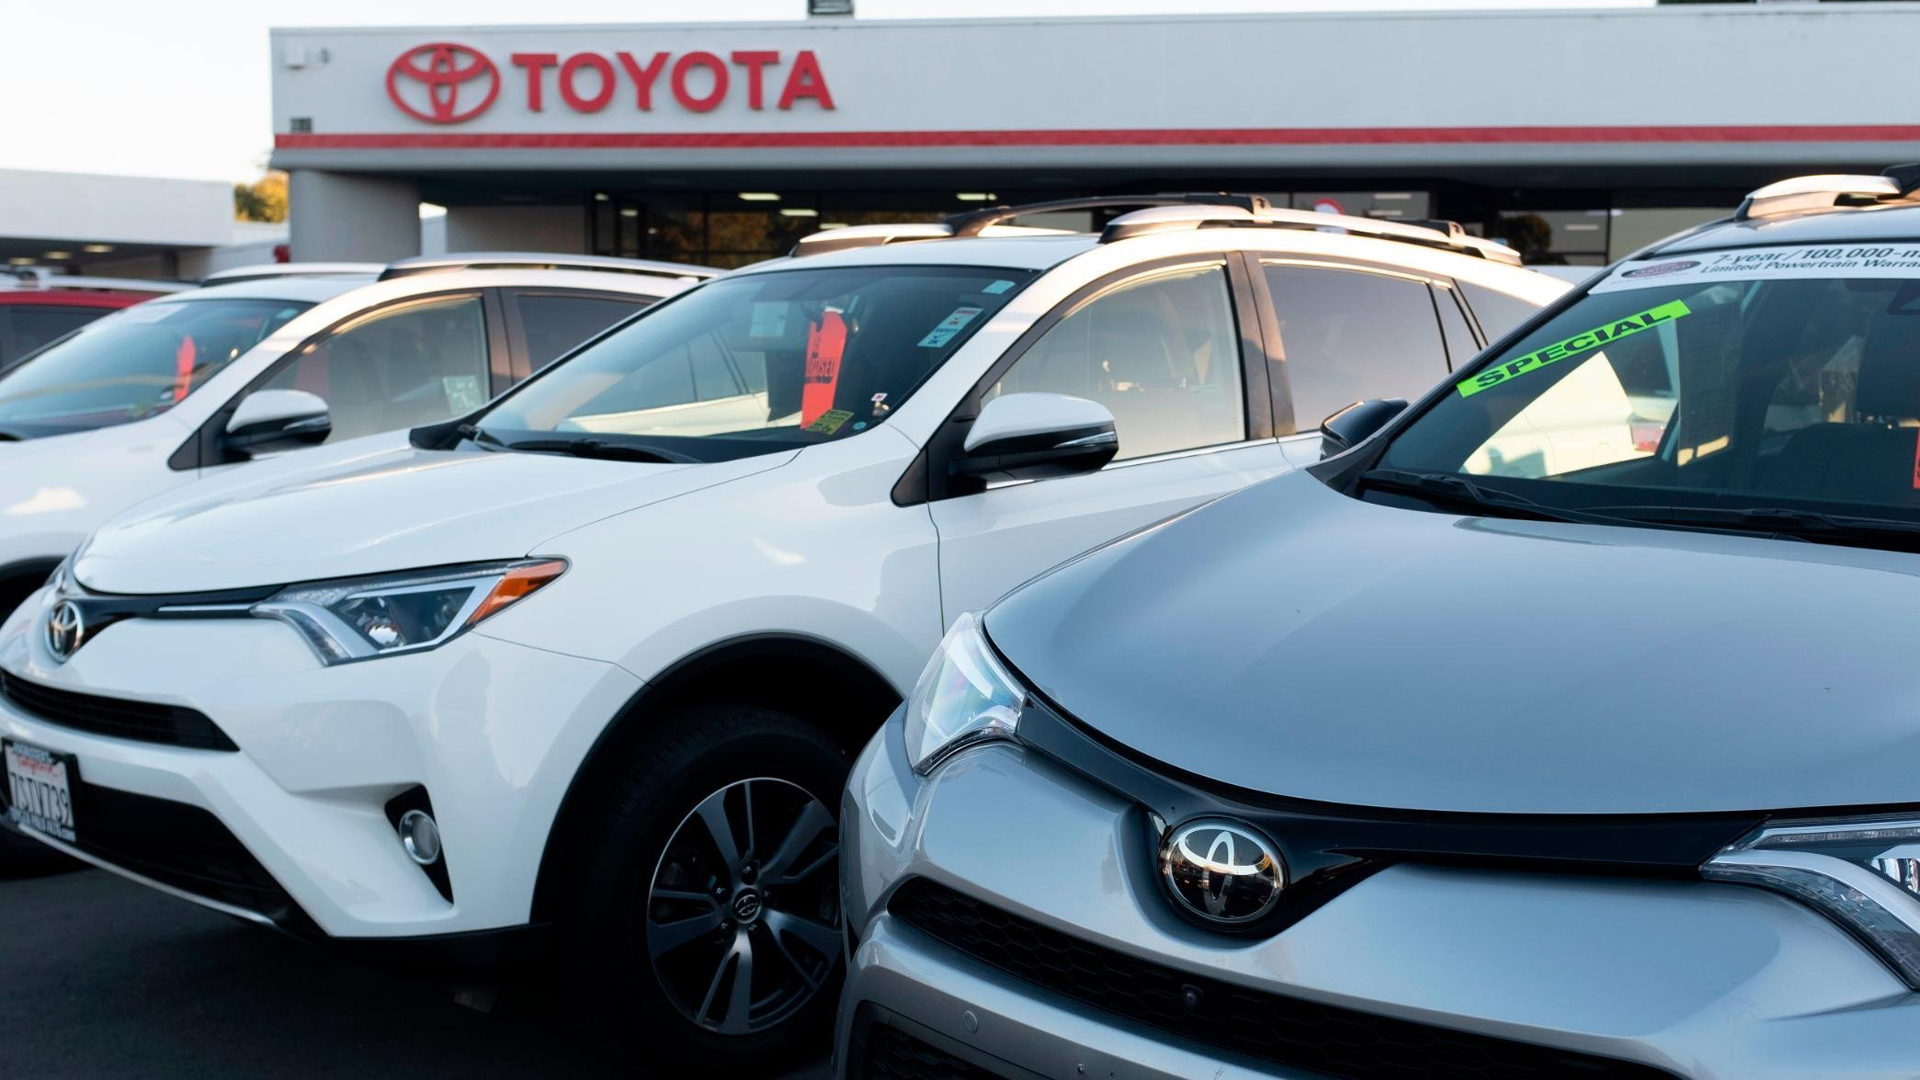 A Toyota dealership is seen in a file photo. (Credit: YichuanCao/NurPhoto/Getty Images)